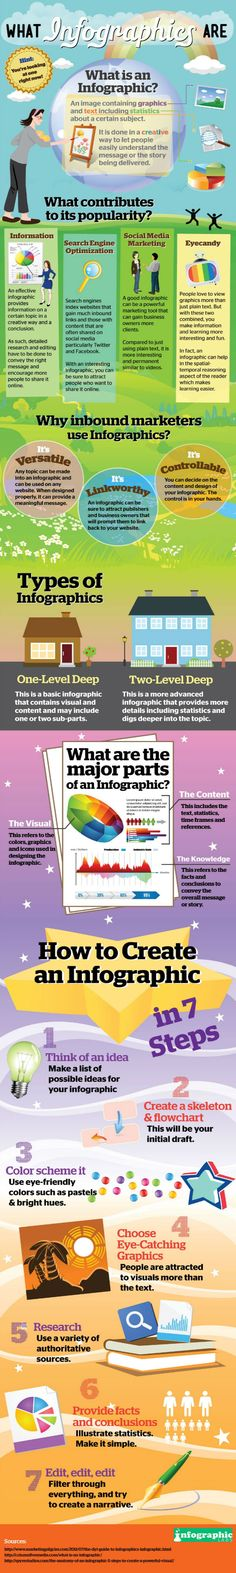 infographic Infographic resized 600